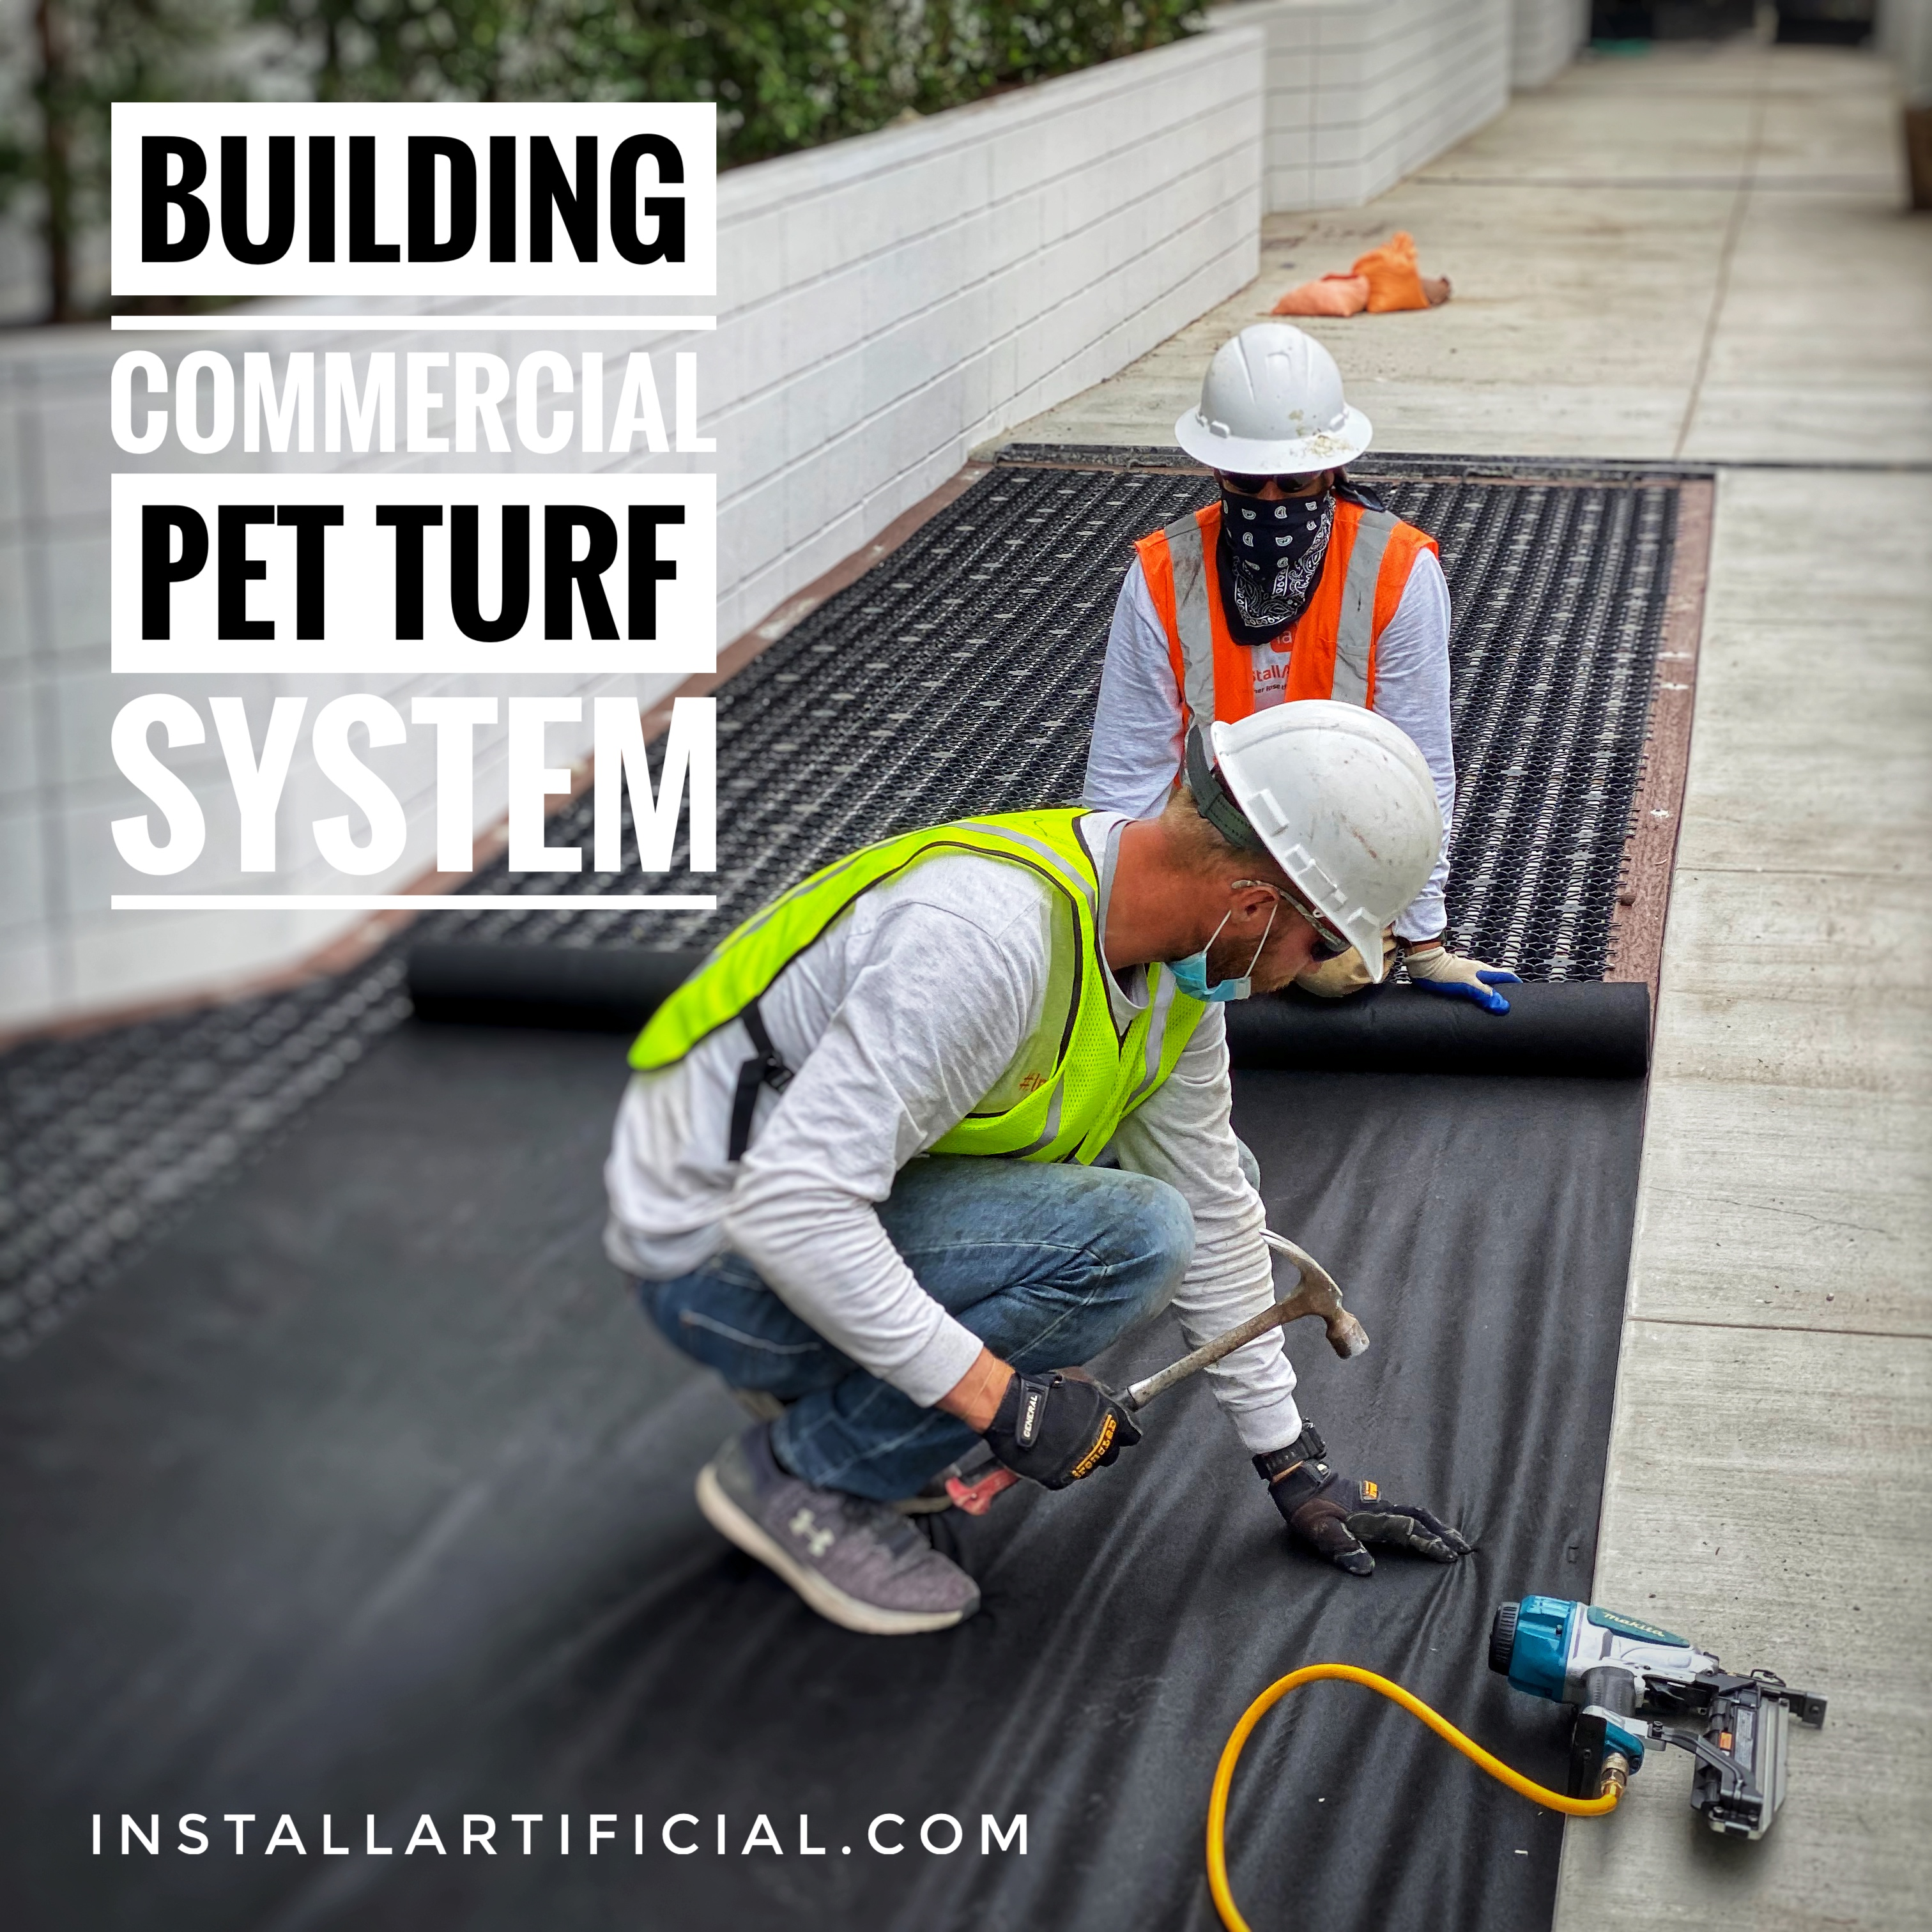 commercial k9 pet turf system installation